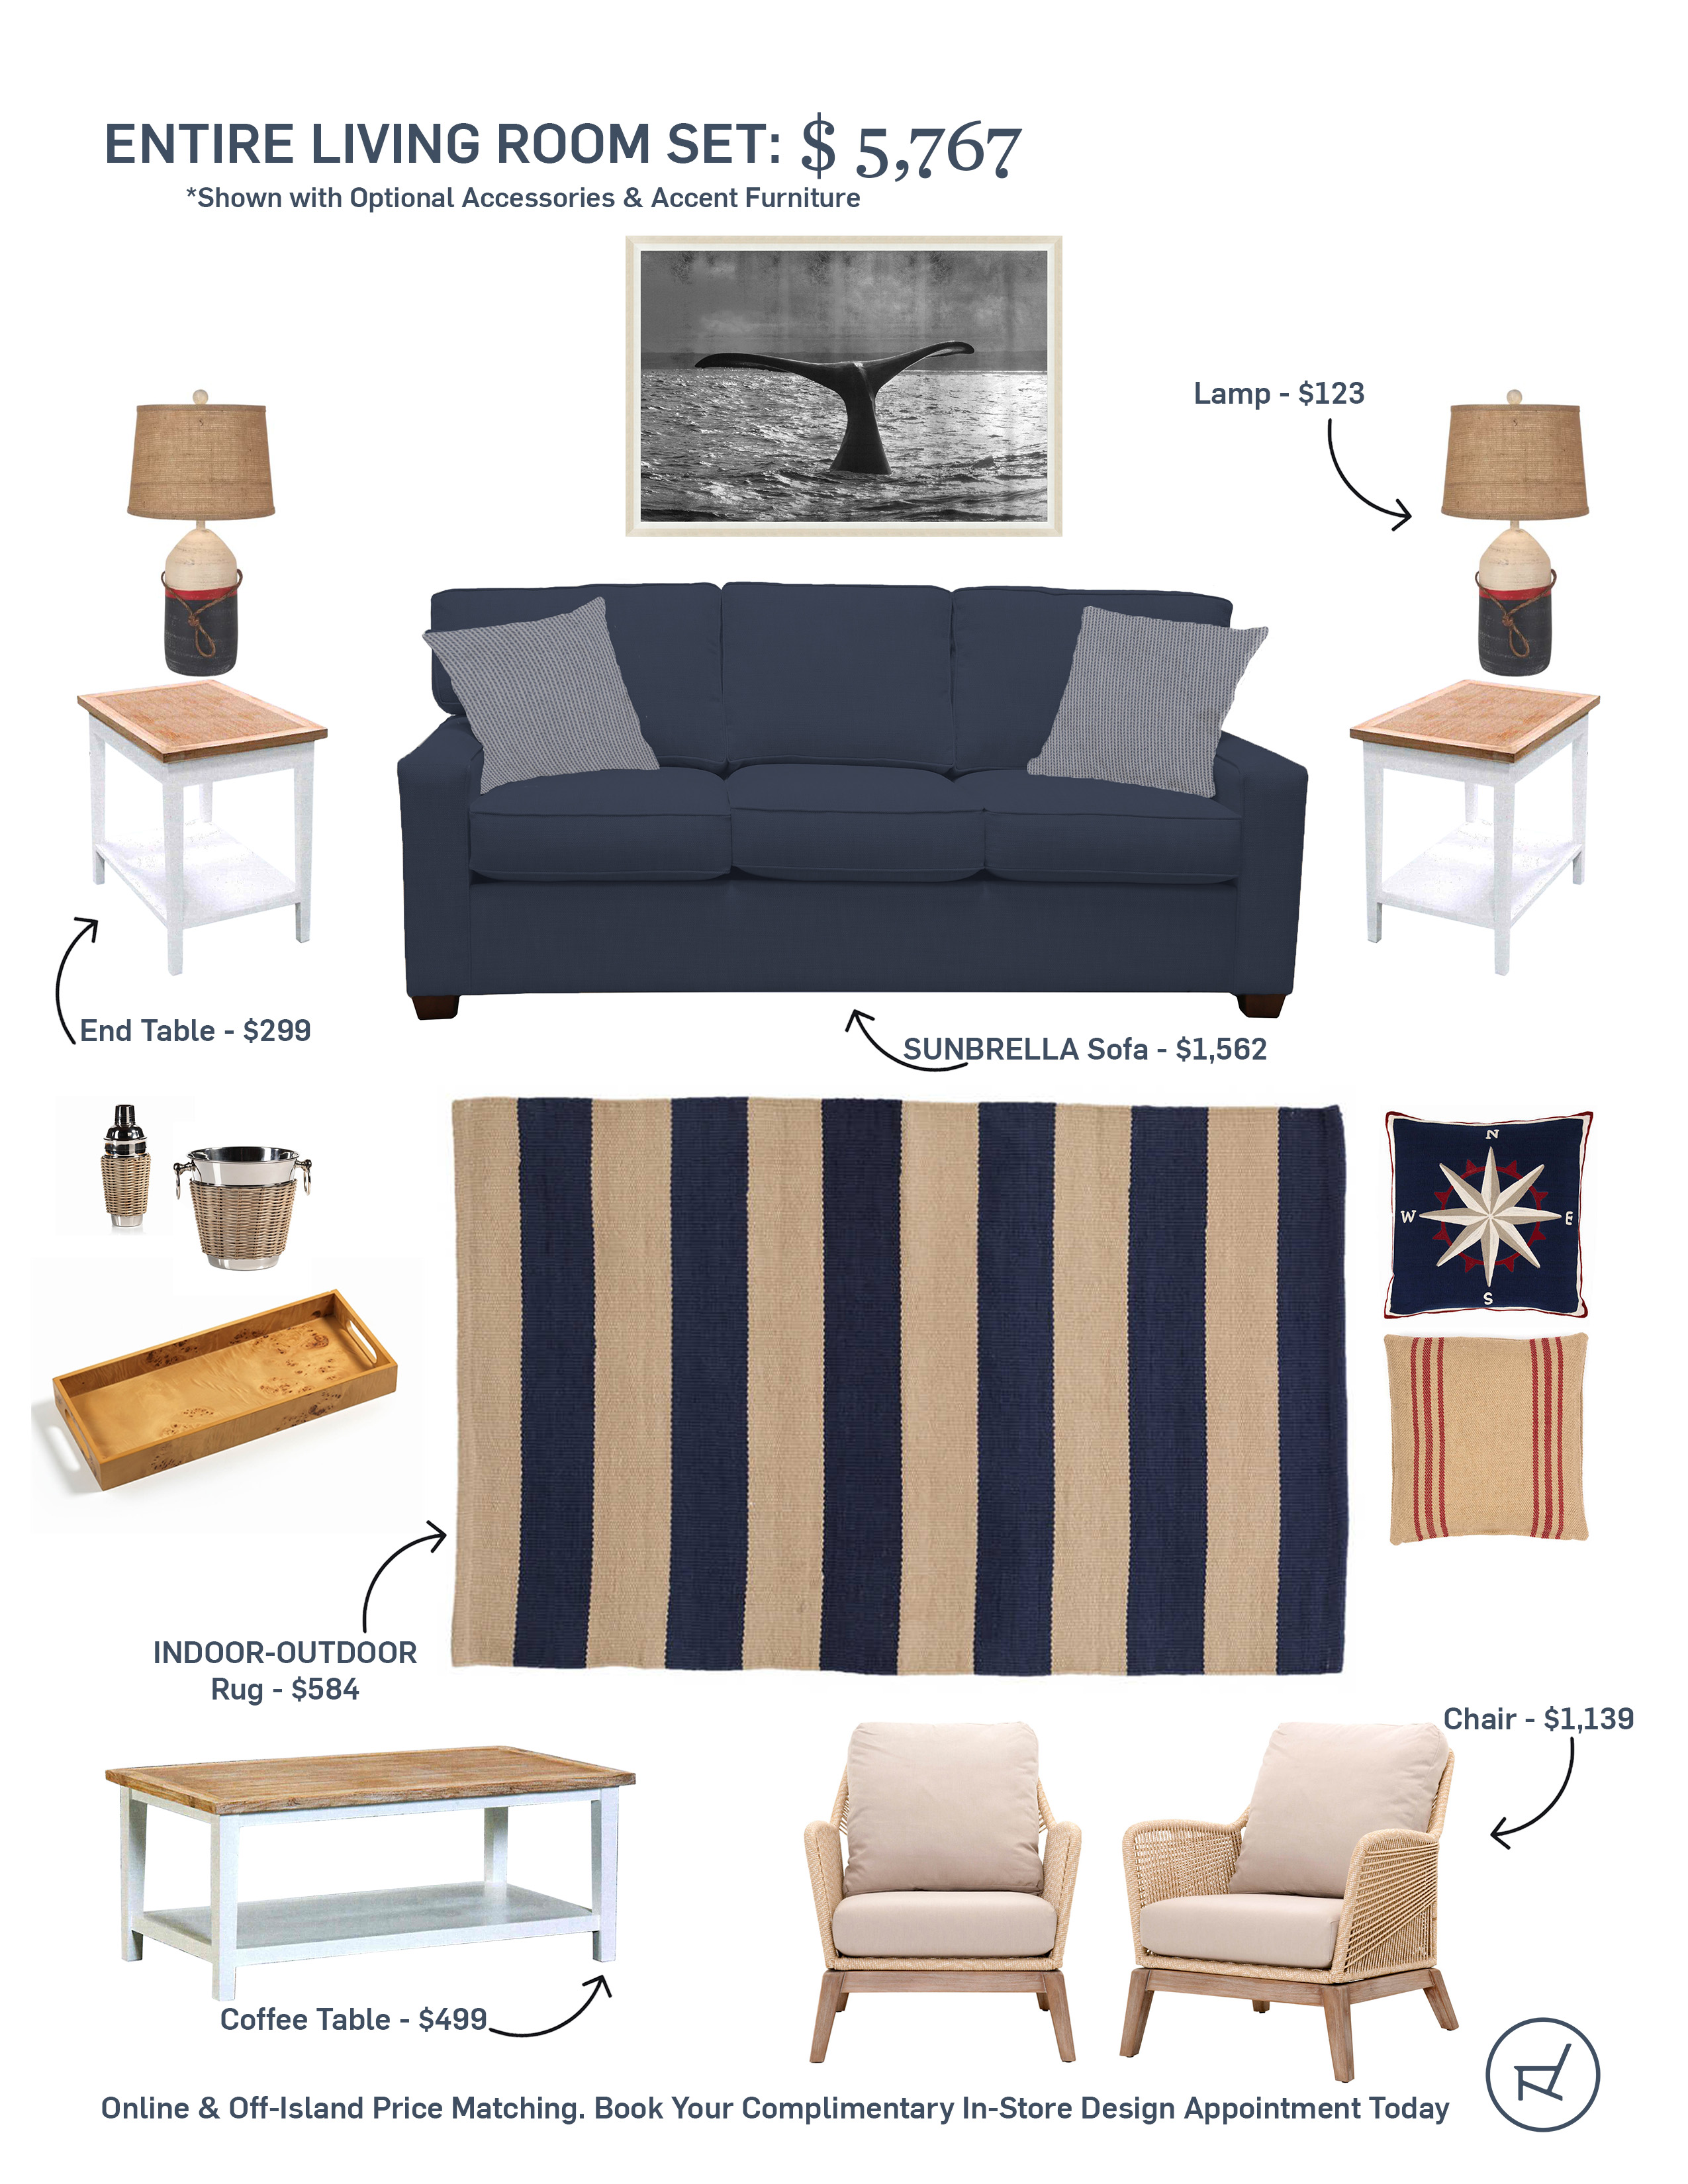 Design Your Island Life An Elevated Nautical Themed Living Room Mvy Living